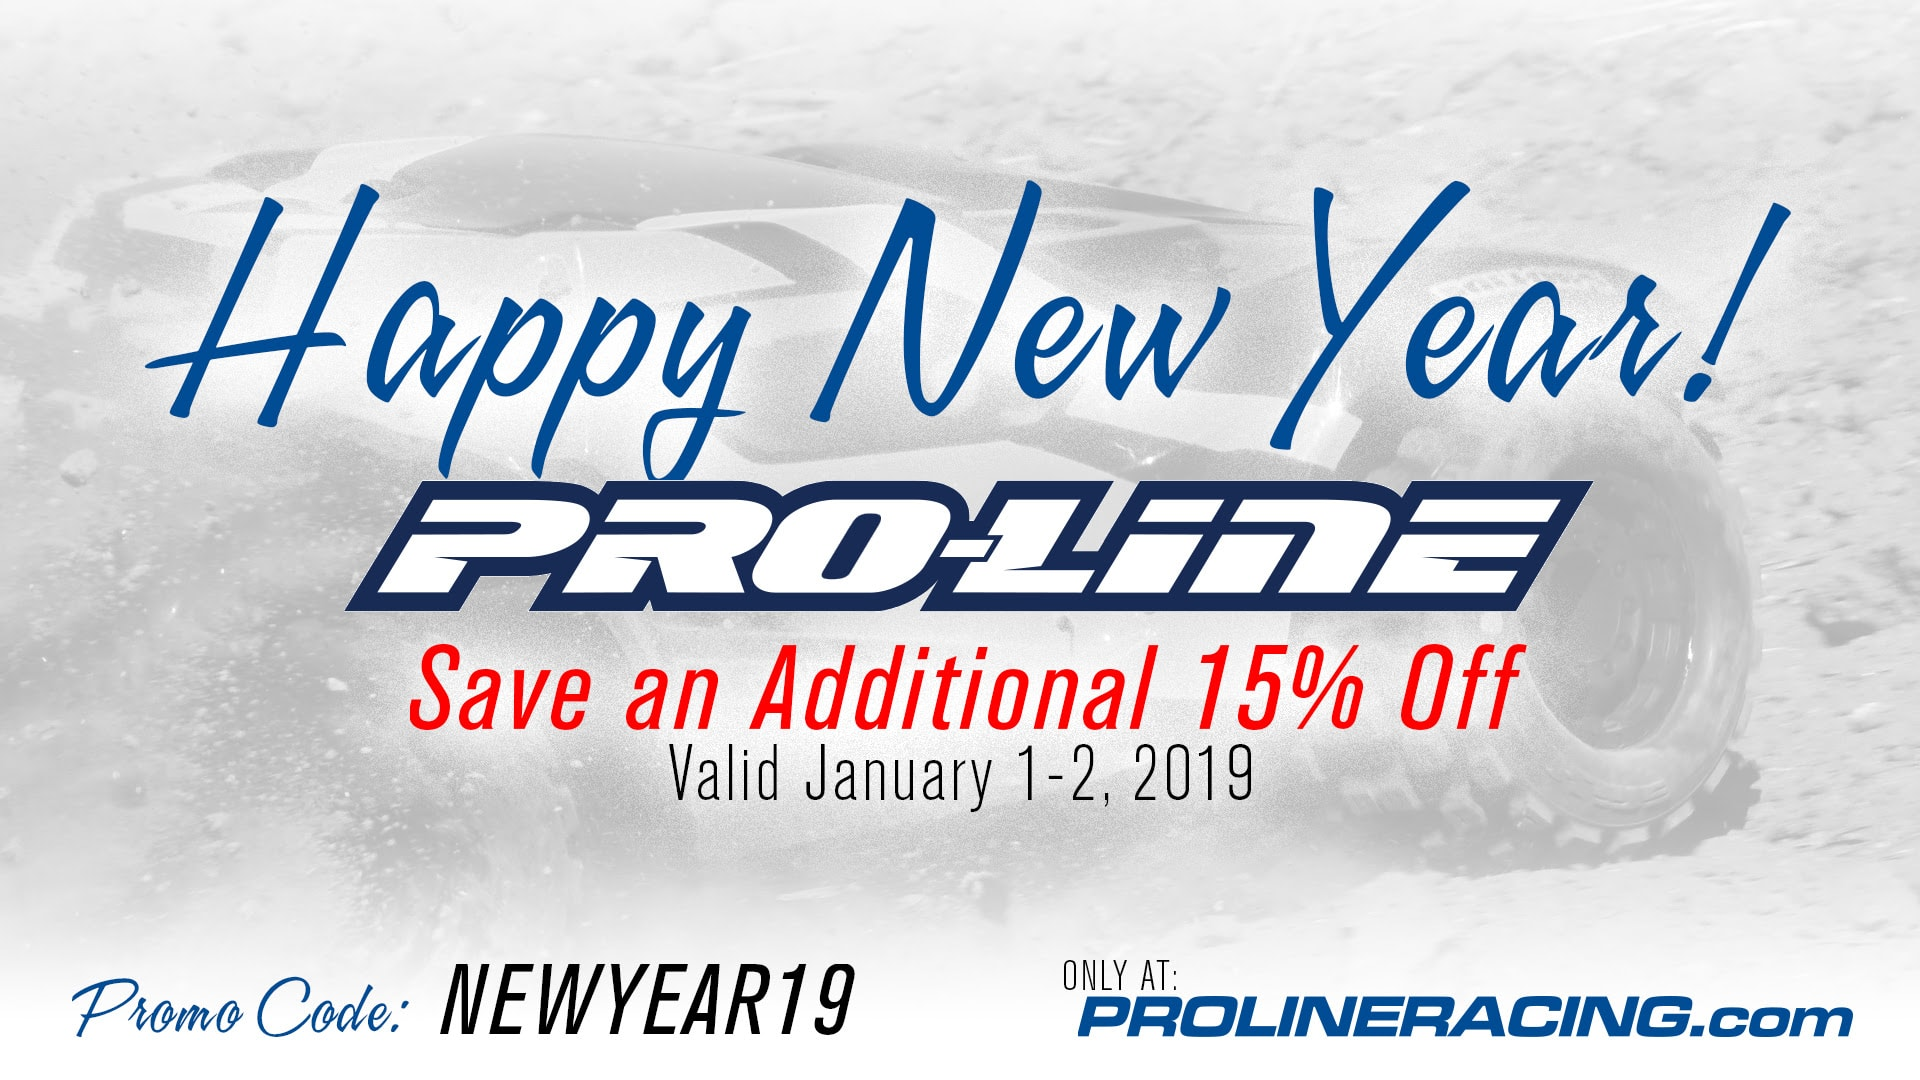 Happy New Year from Pro-Line!